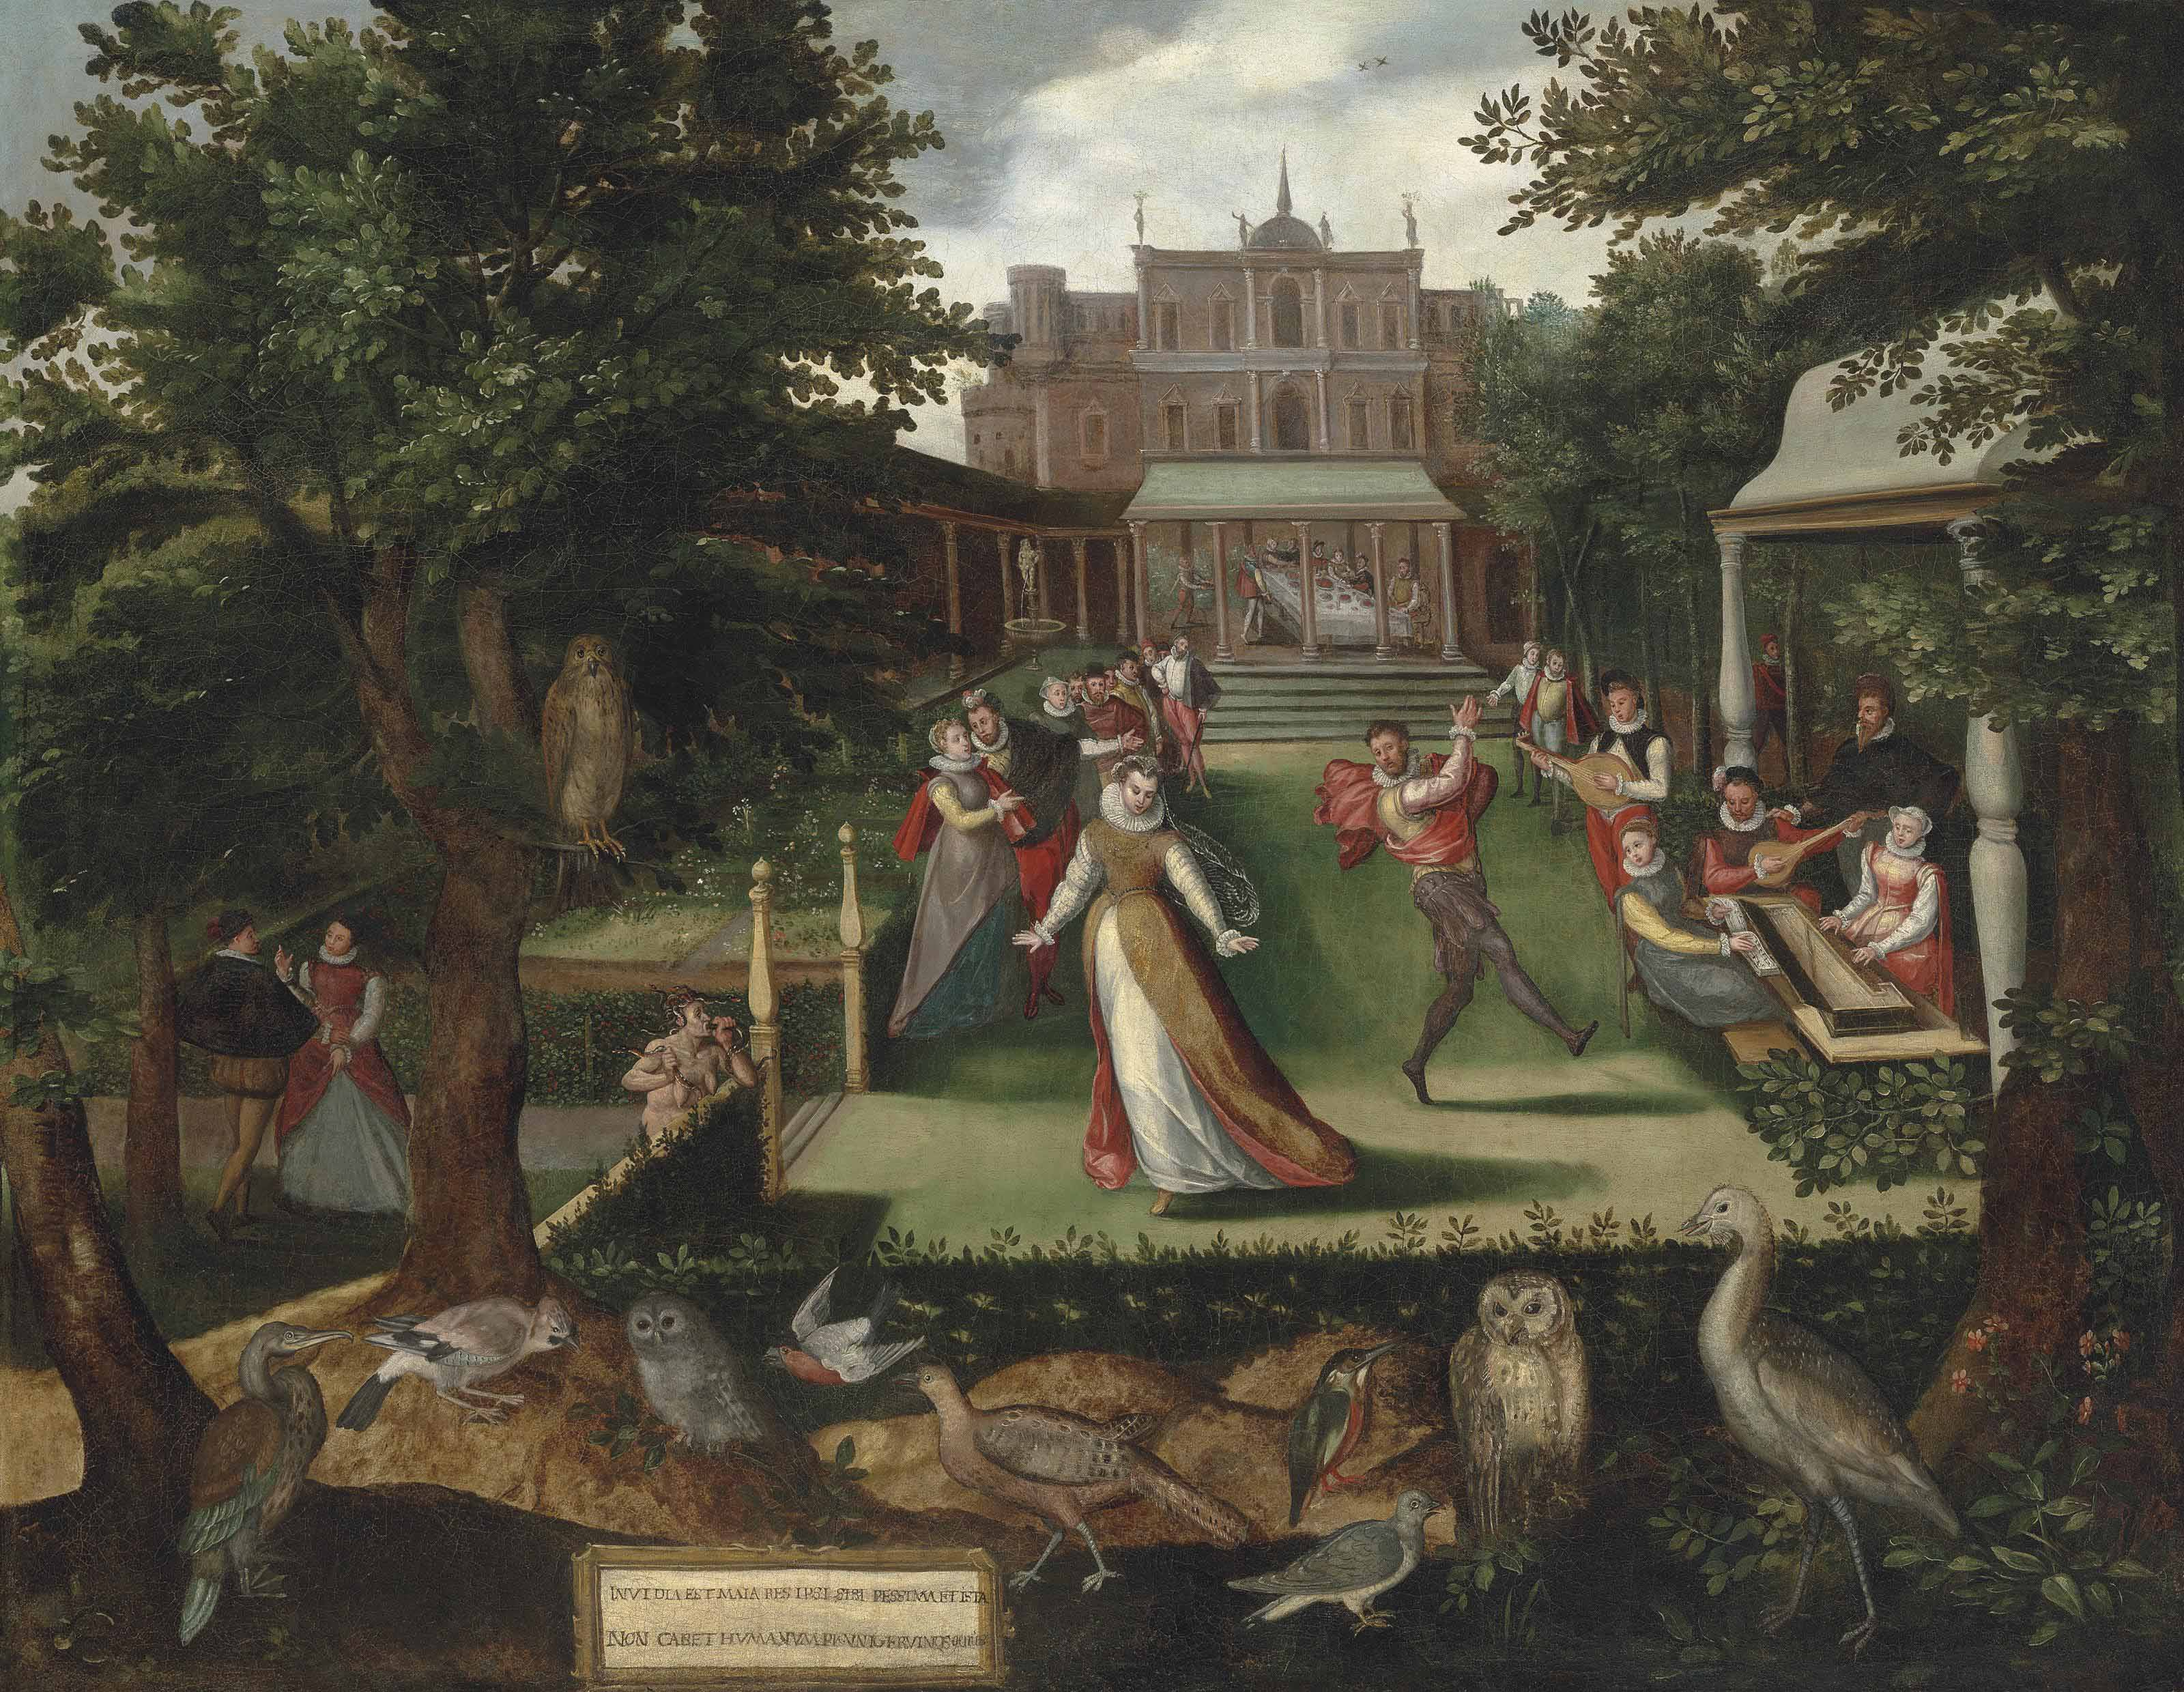 Elegantly dressed figures merrymaking in a garden